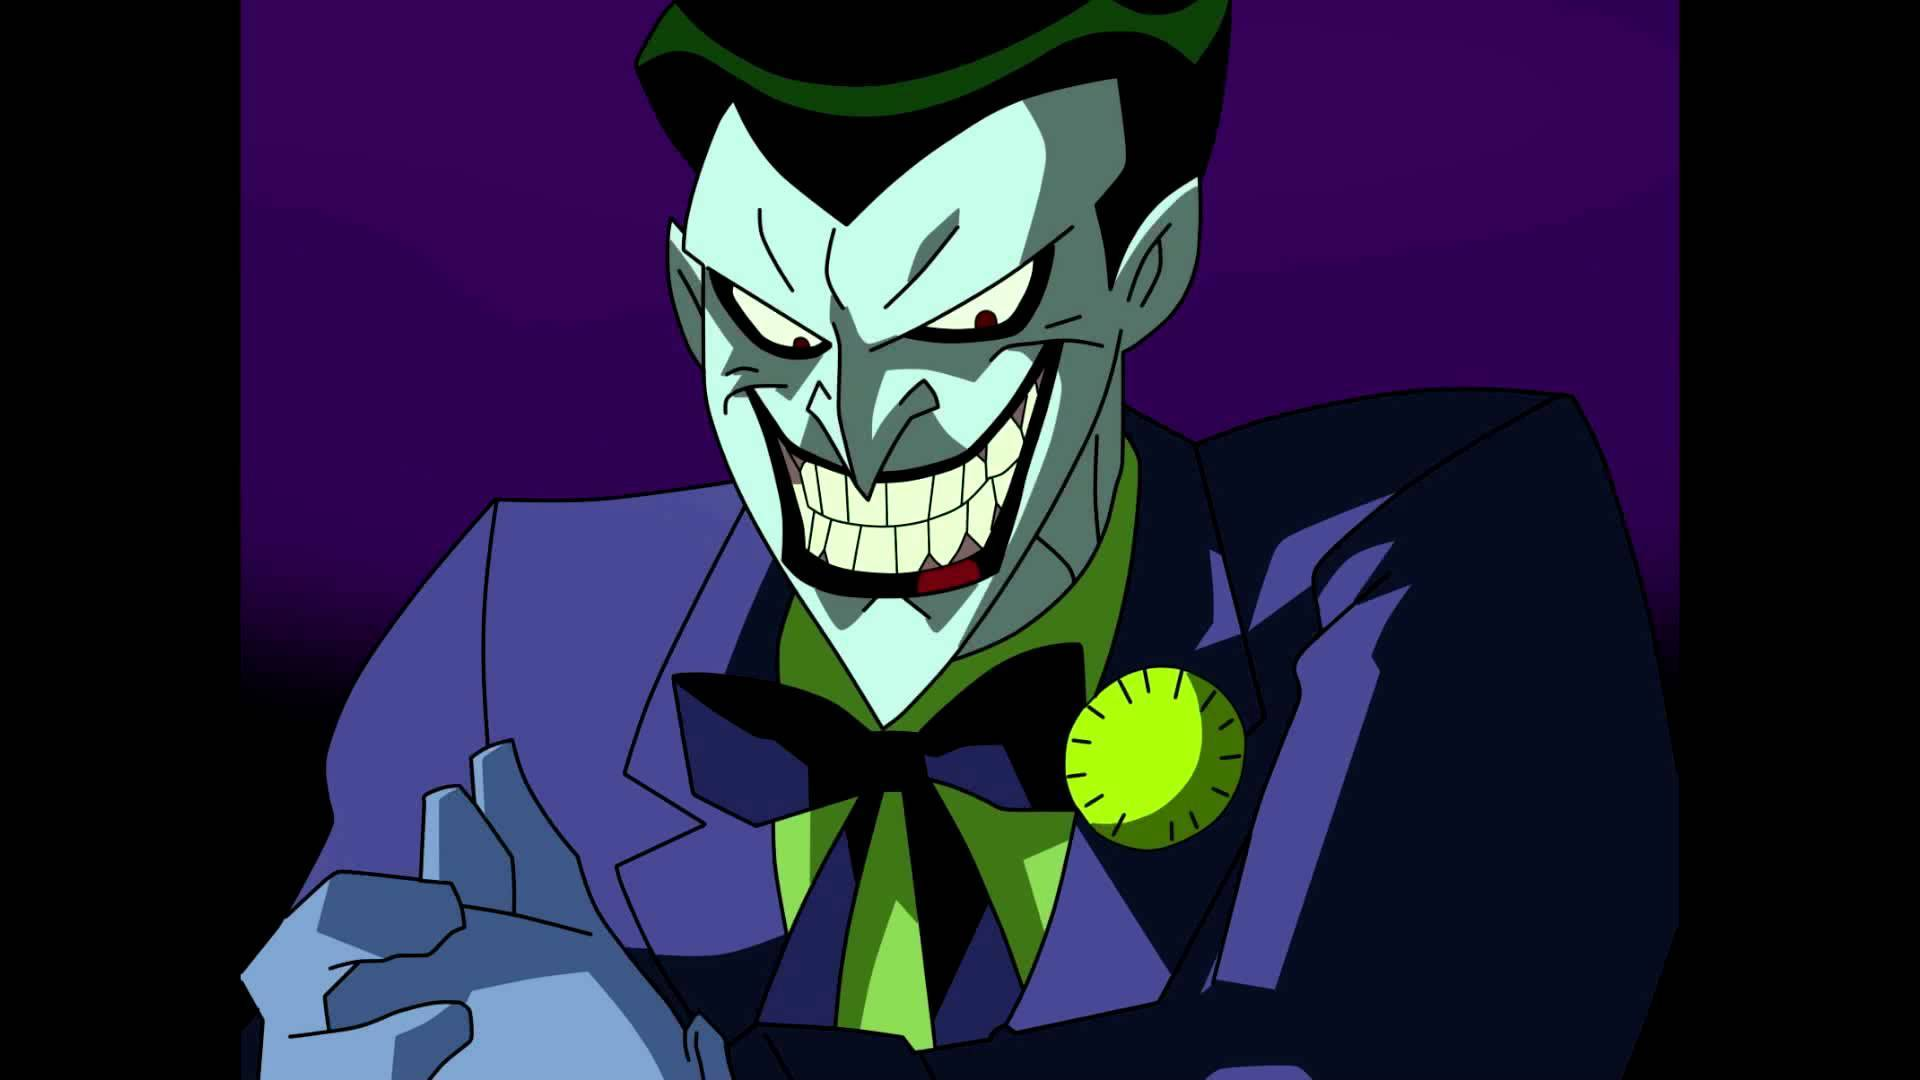 Batman And Joker From The Animated Series Are Back Inverse